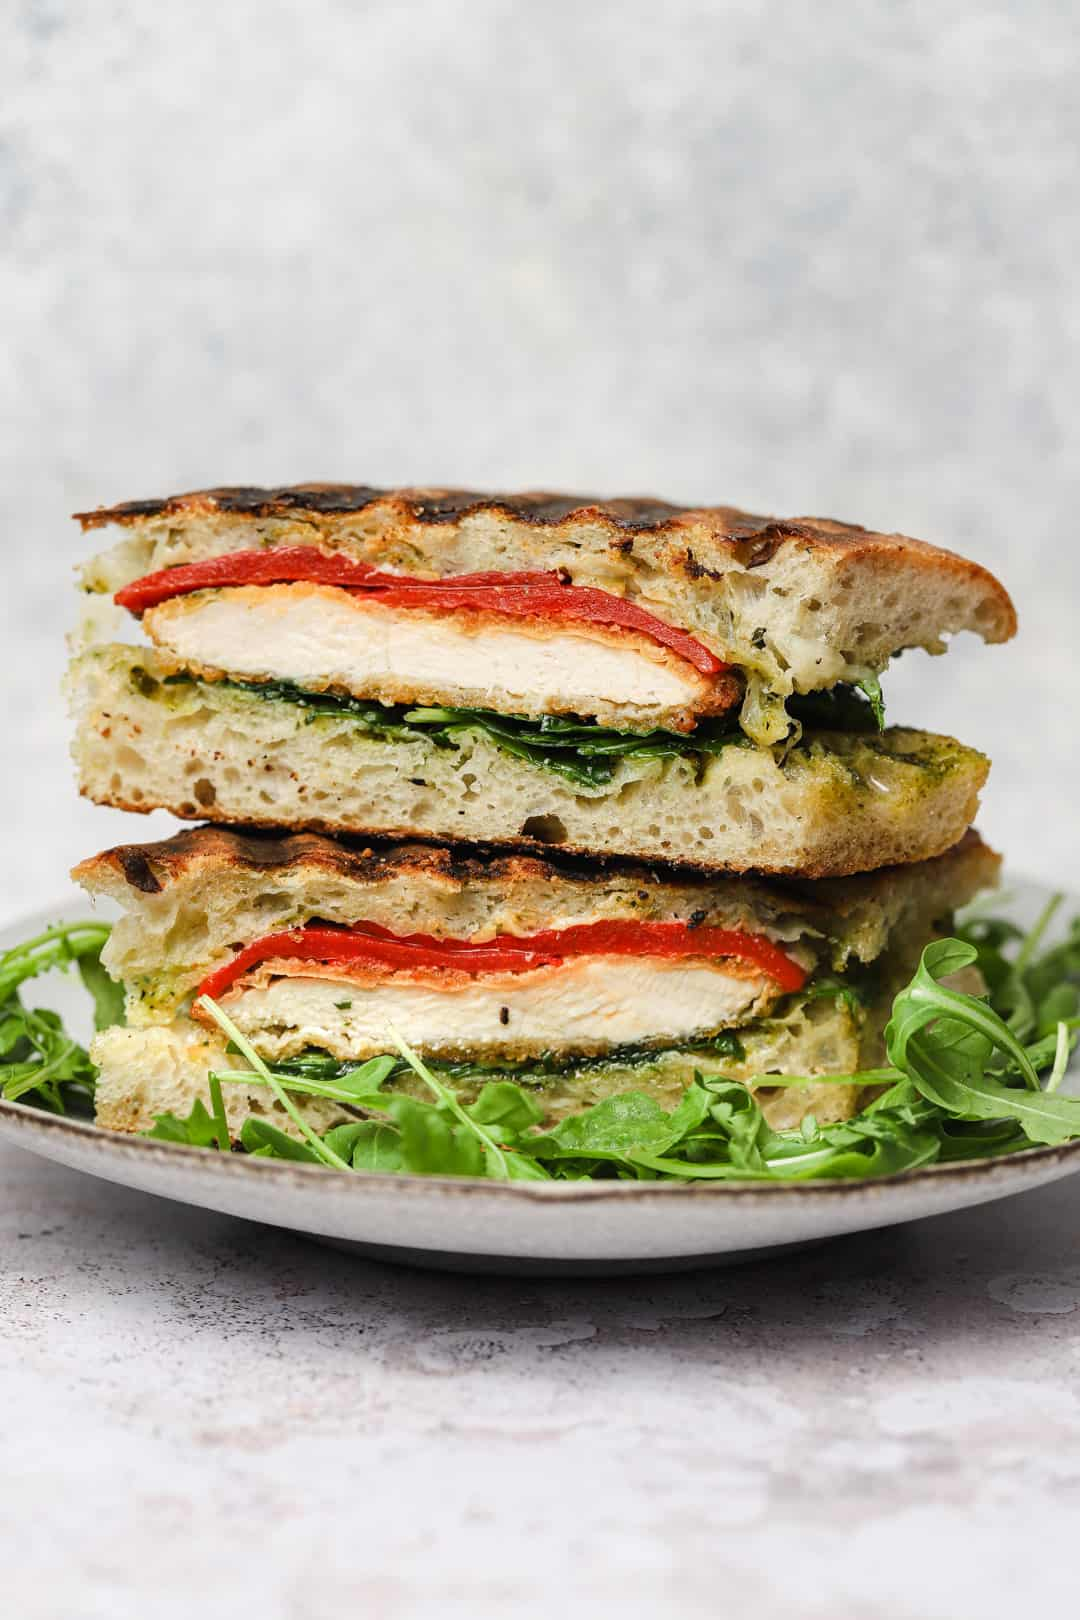 Chicken pesto panini with roasted red peppers on focaccia